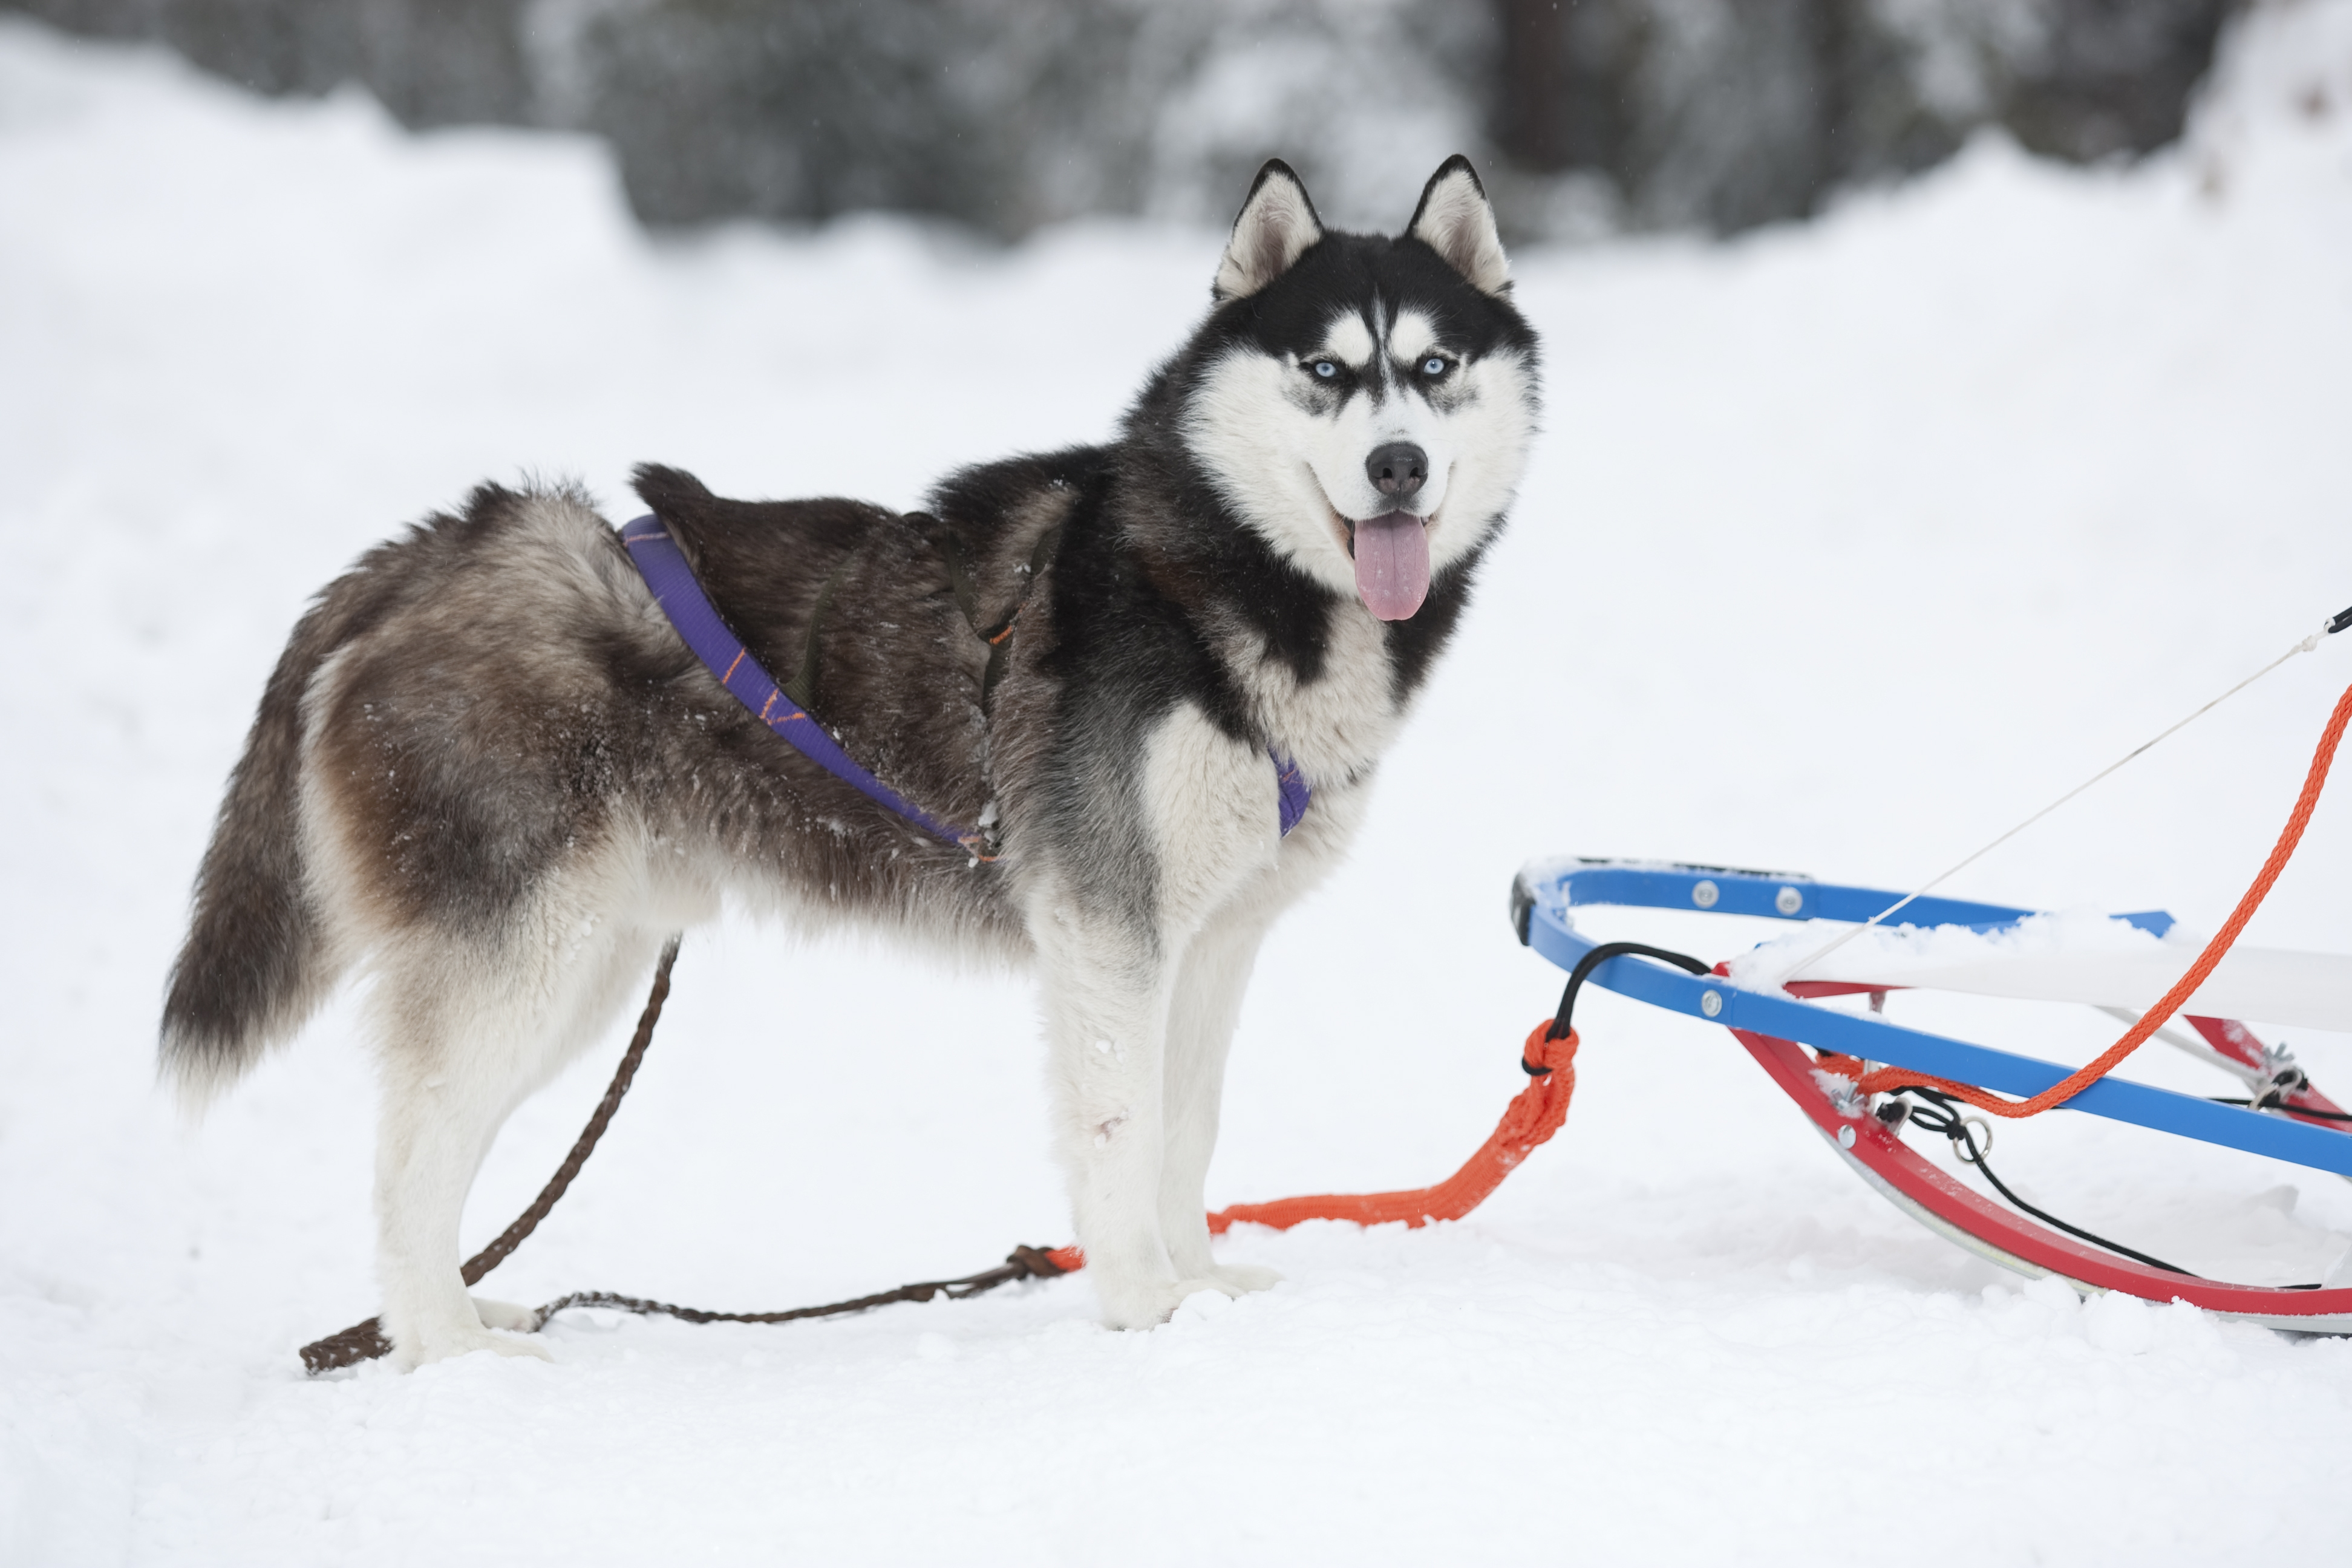 111444 download wallpaper Animals, Dog, Husky, Haska, Team screensavers and pictures for free